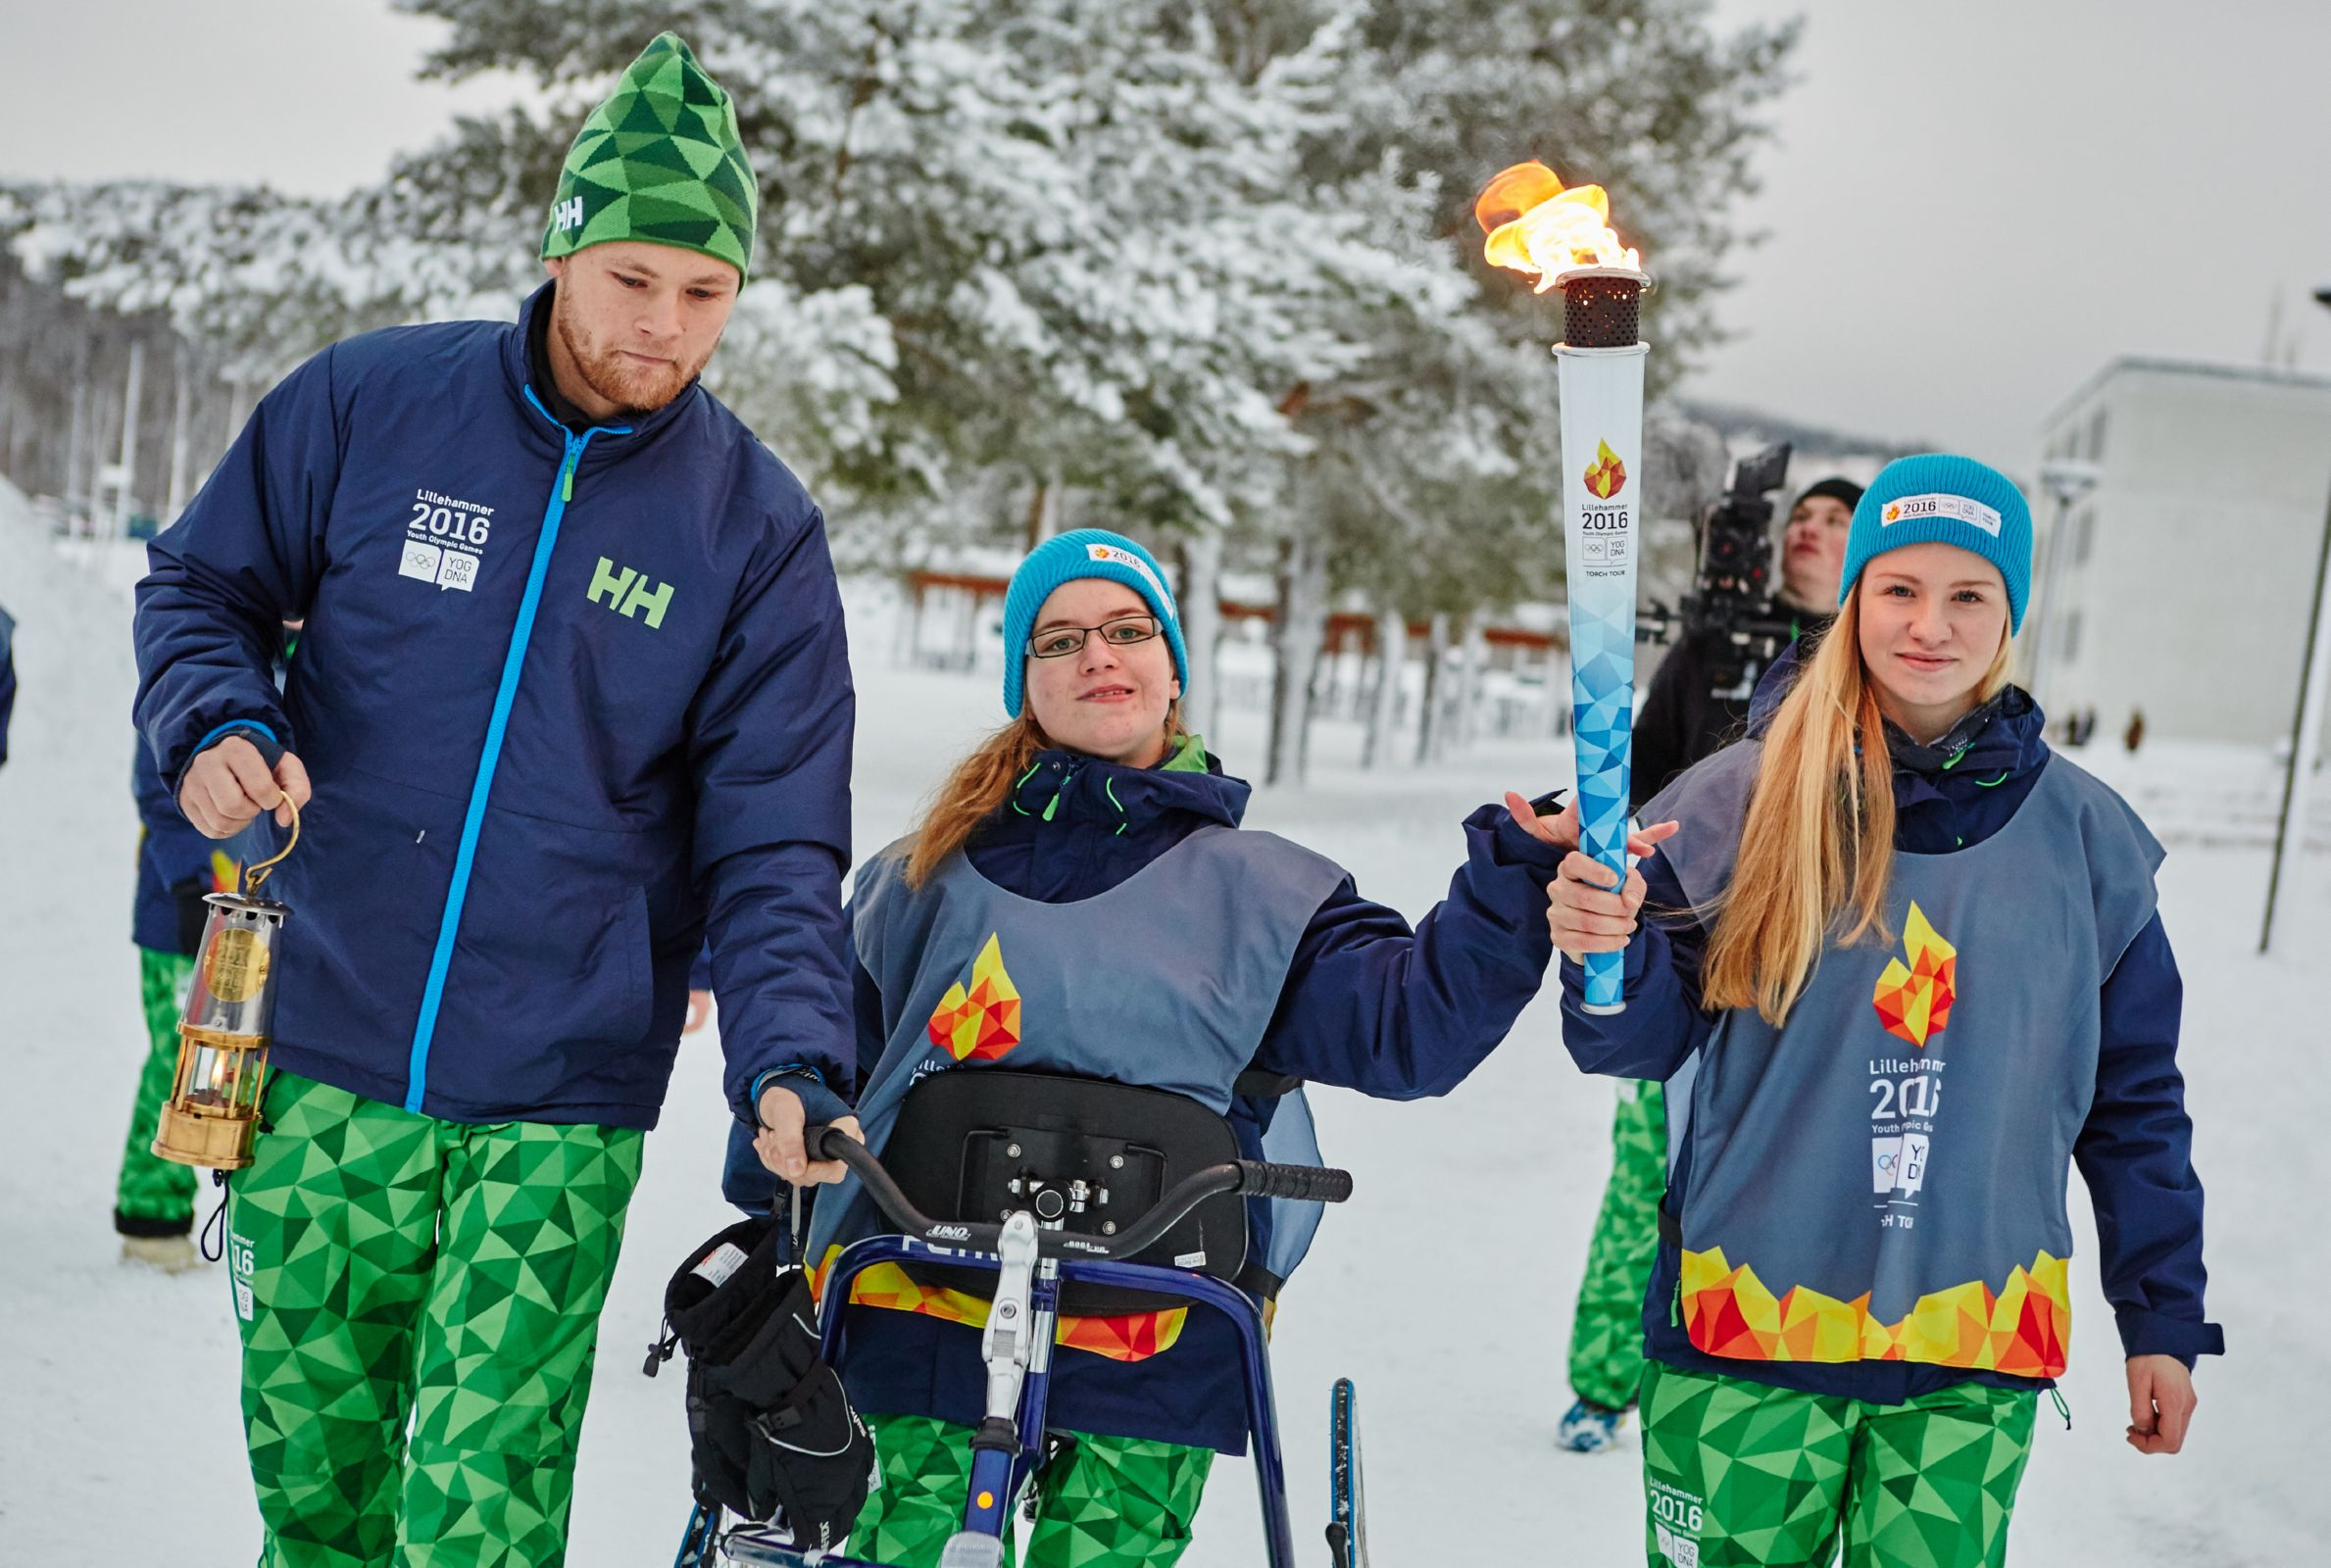 Steinkjer - Youth Olympic Torch Tour